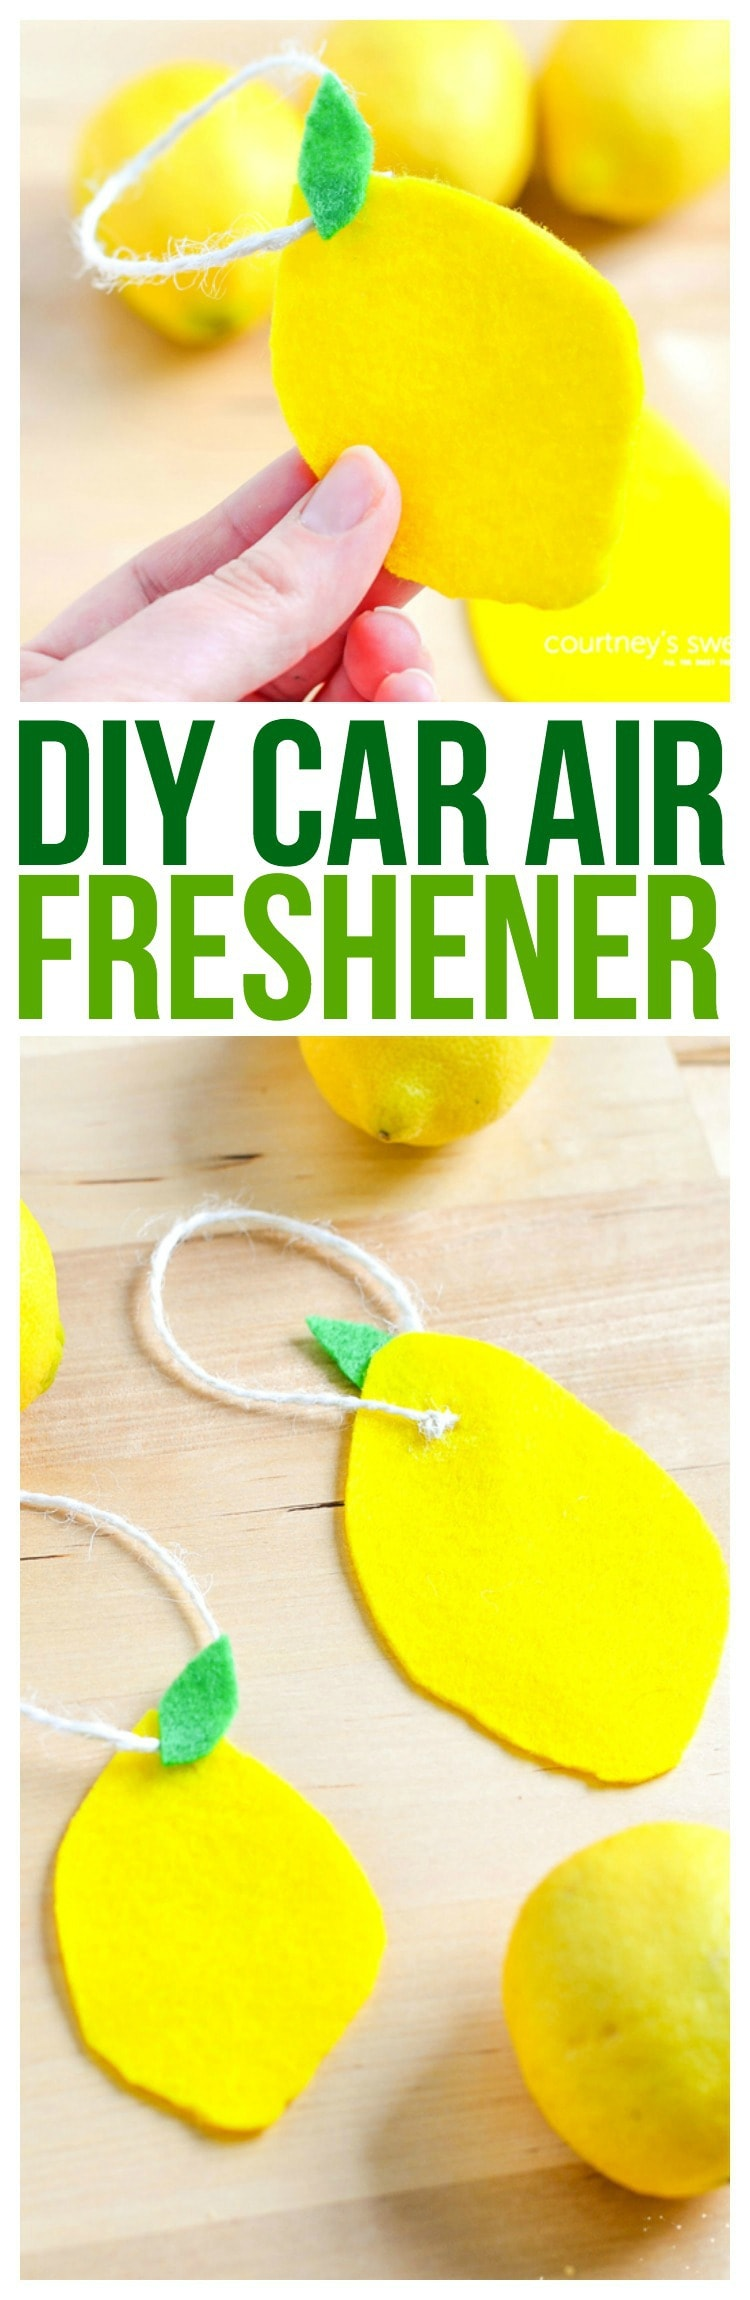 car air freshener diy essential oils organic car air freshener hard to find? Don't worry we'll we are showing you a natural car deodorizer!